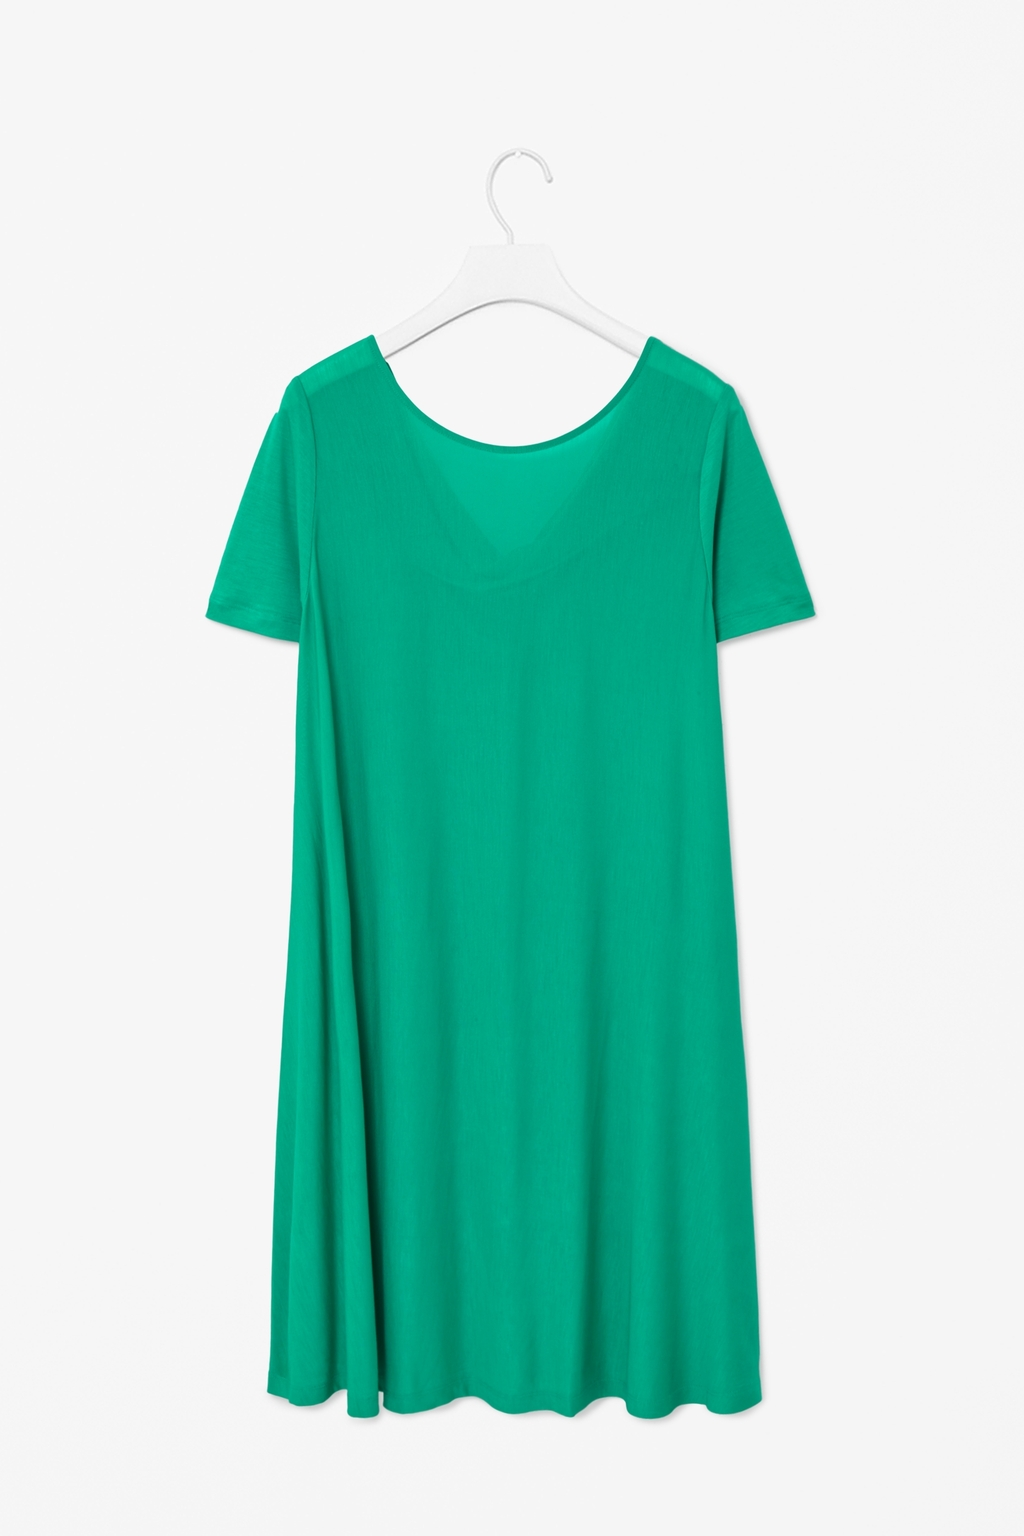 Draped Back Dress - style: t-shirt; neckline: round neck; fit: loose; pattern: plain; back detail: back revealing; predominant colour: mint green; occasions: casual; length: on the knee; fibres: cotton - 100%; sleeve length: short sleeve; sleeve style: standard; pattern type: fabric; texture group: jersey - stretchy/drapey; season: s/s 2014